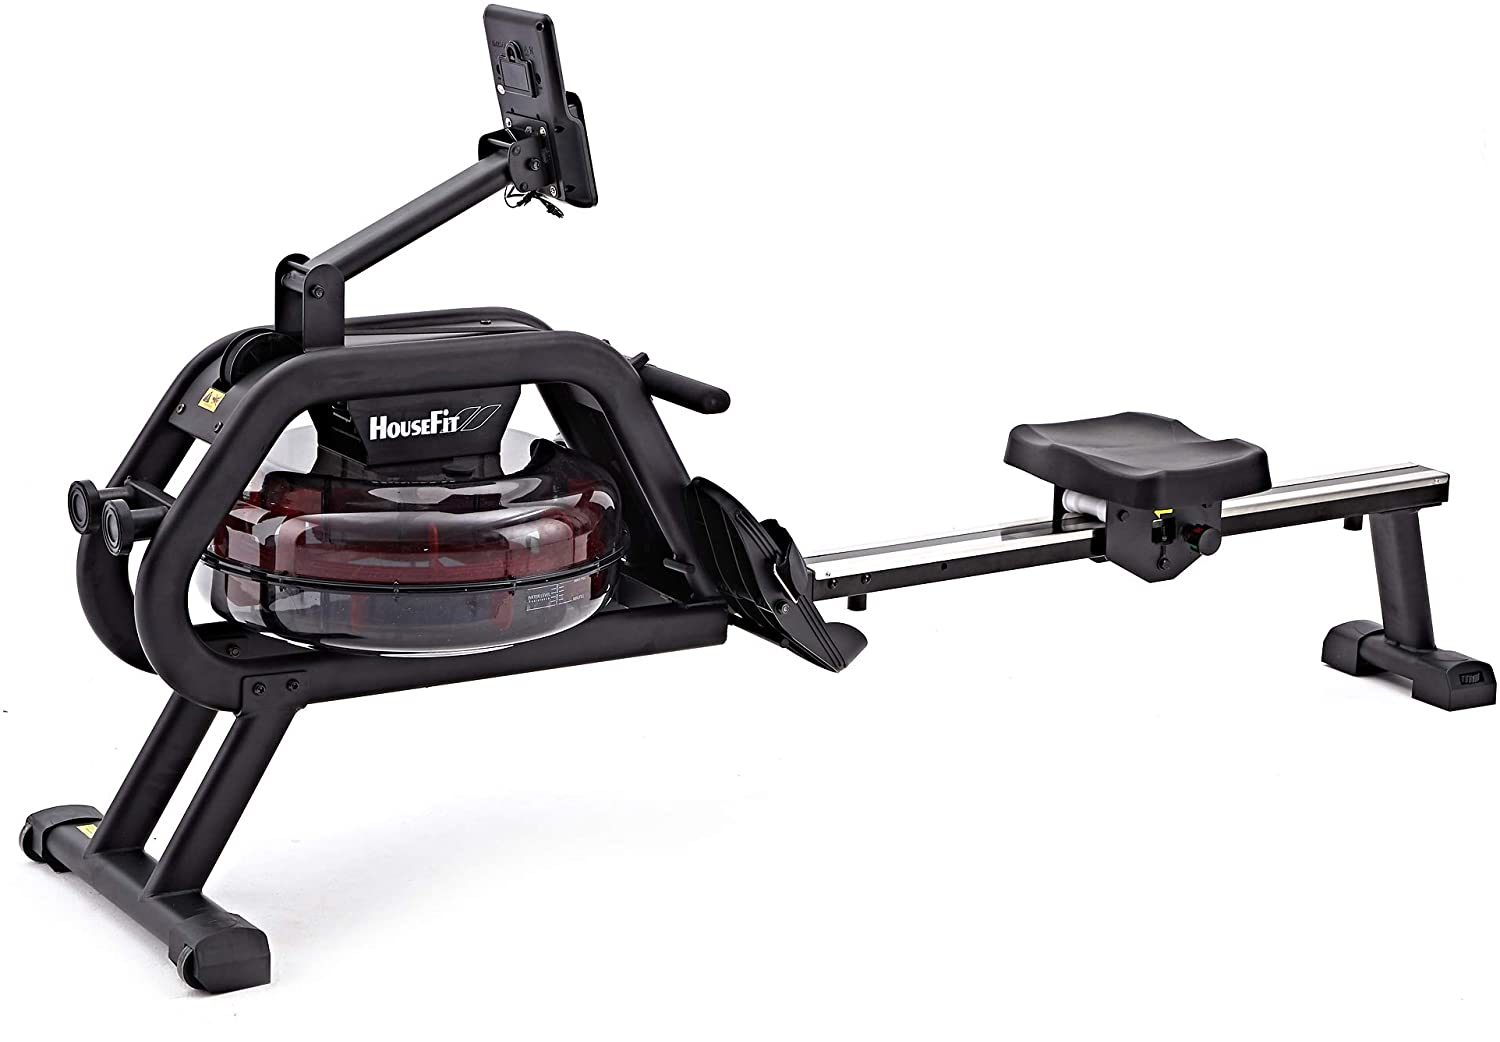 HouseFit Water Rowing Machine 330Lbs Capacity